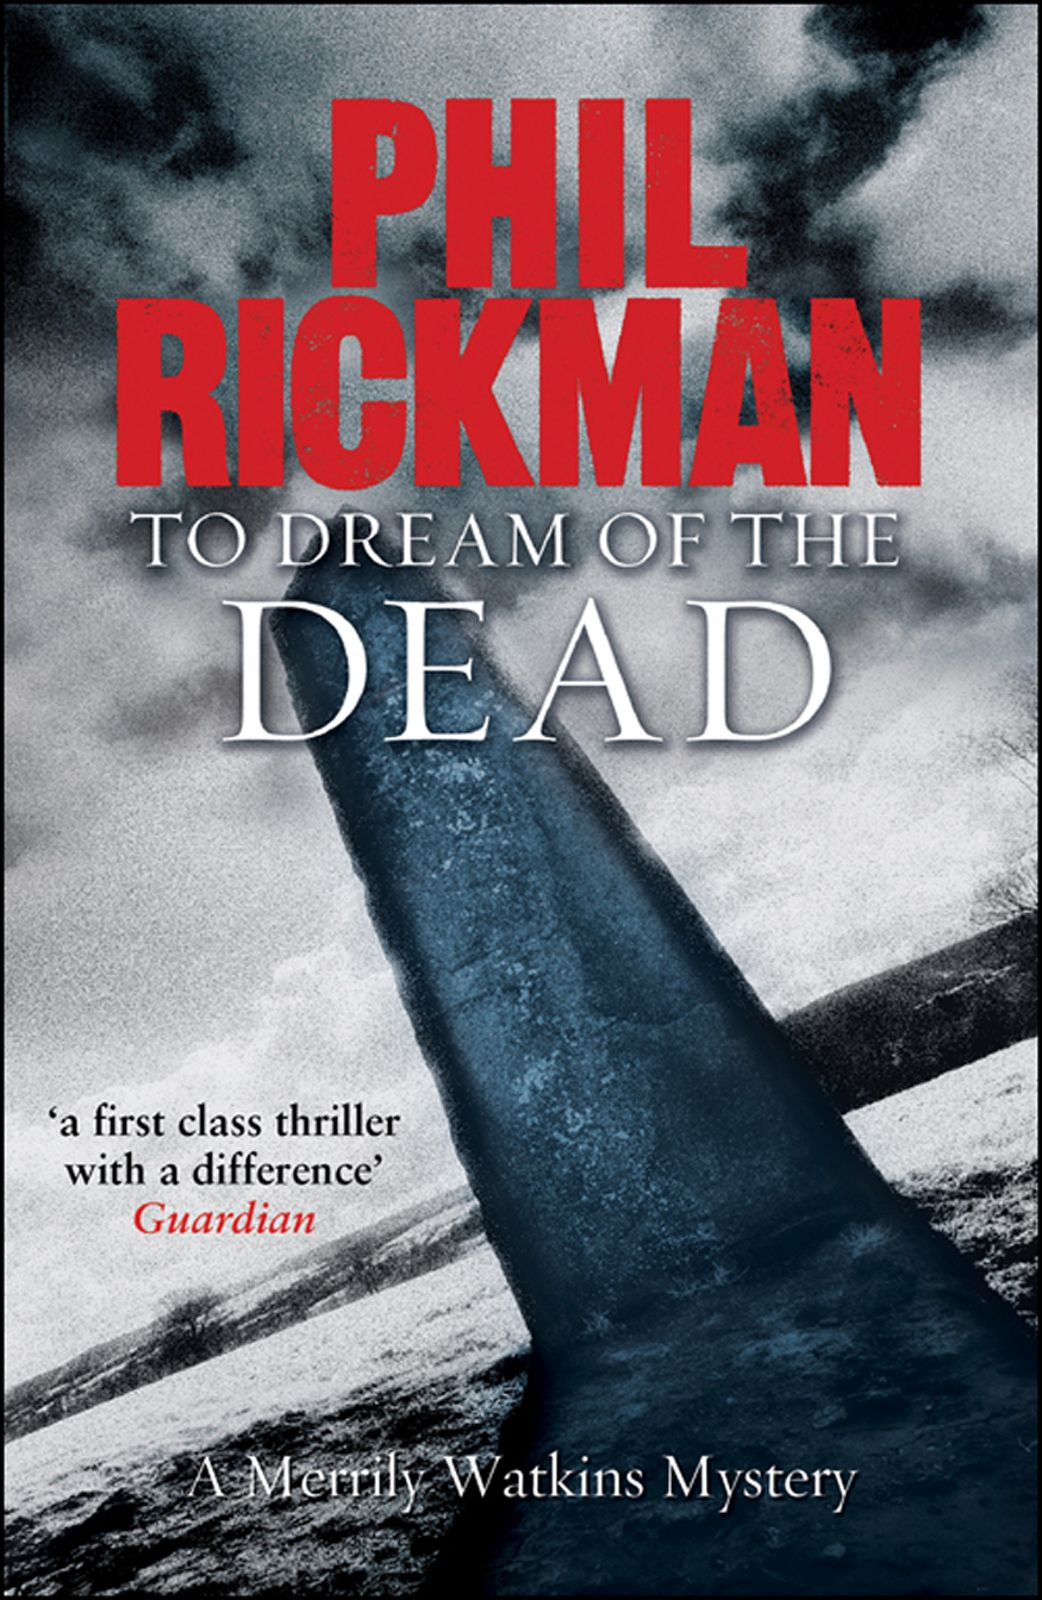 To Dream of the Dead: A Merrily Watkins Mystery